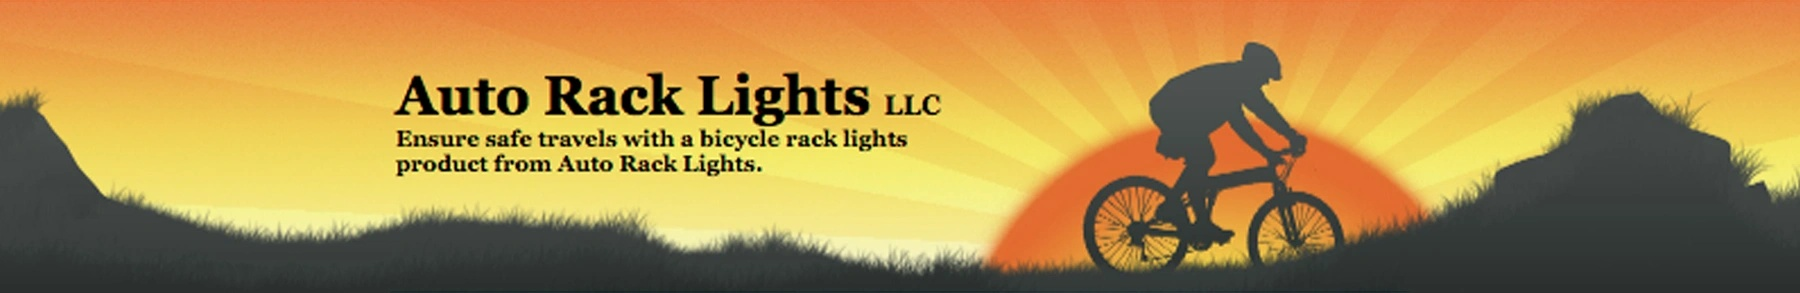 Auto Rack Lights LLC Ensure safe travels with a bicycl rack light